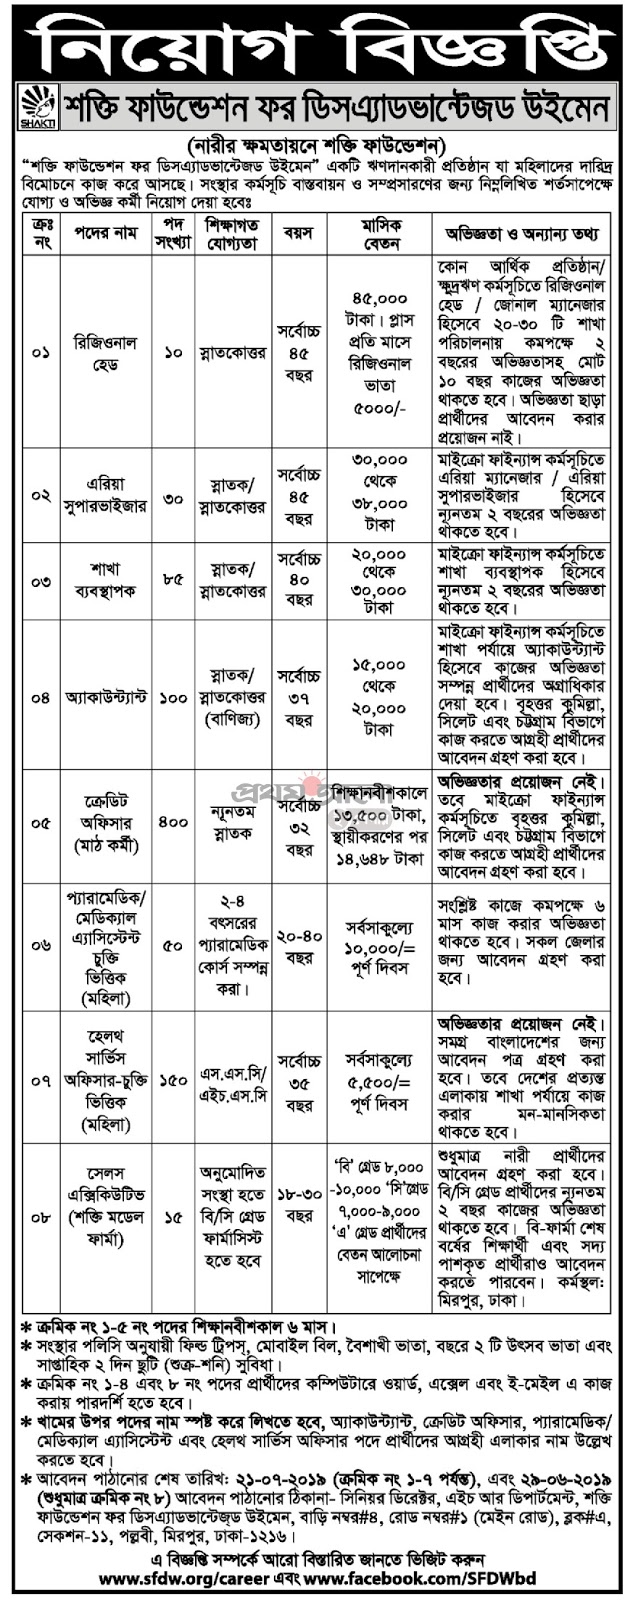 Shakti foundation Job Circular 2019  bdjobss